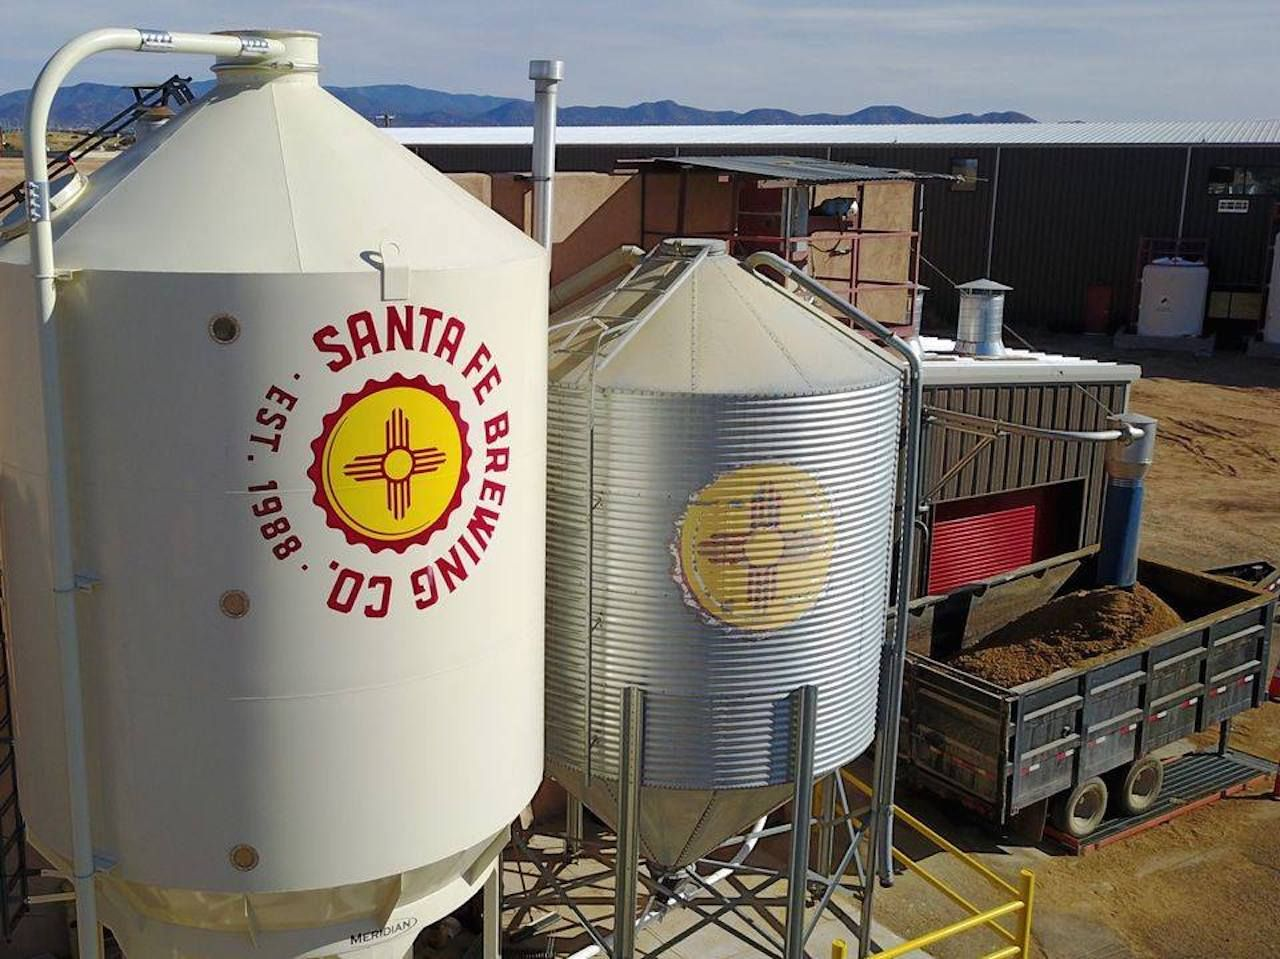 Santa Fe Brewing Company distilling tanks